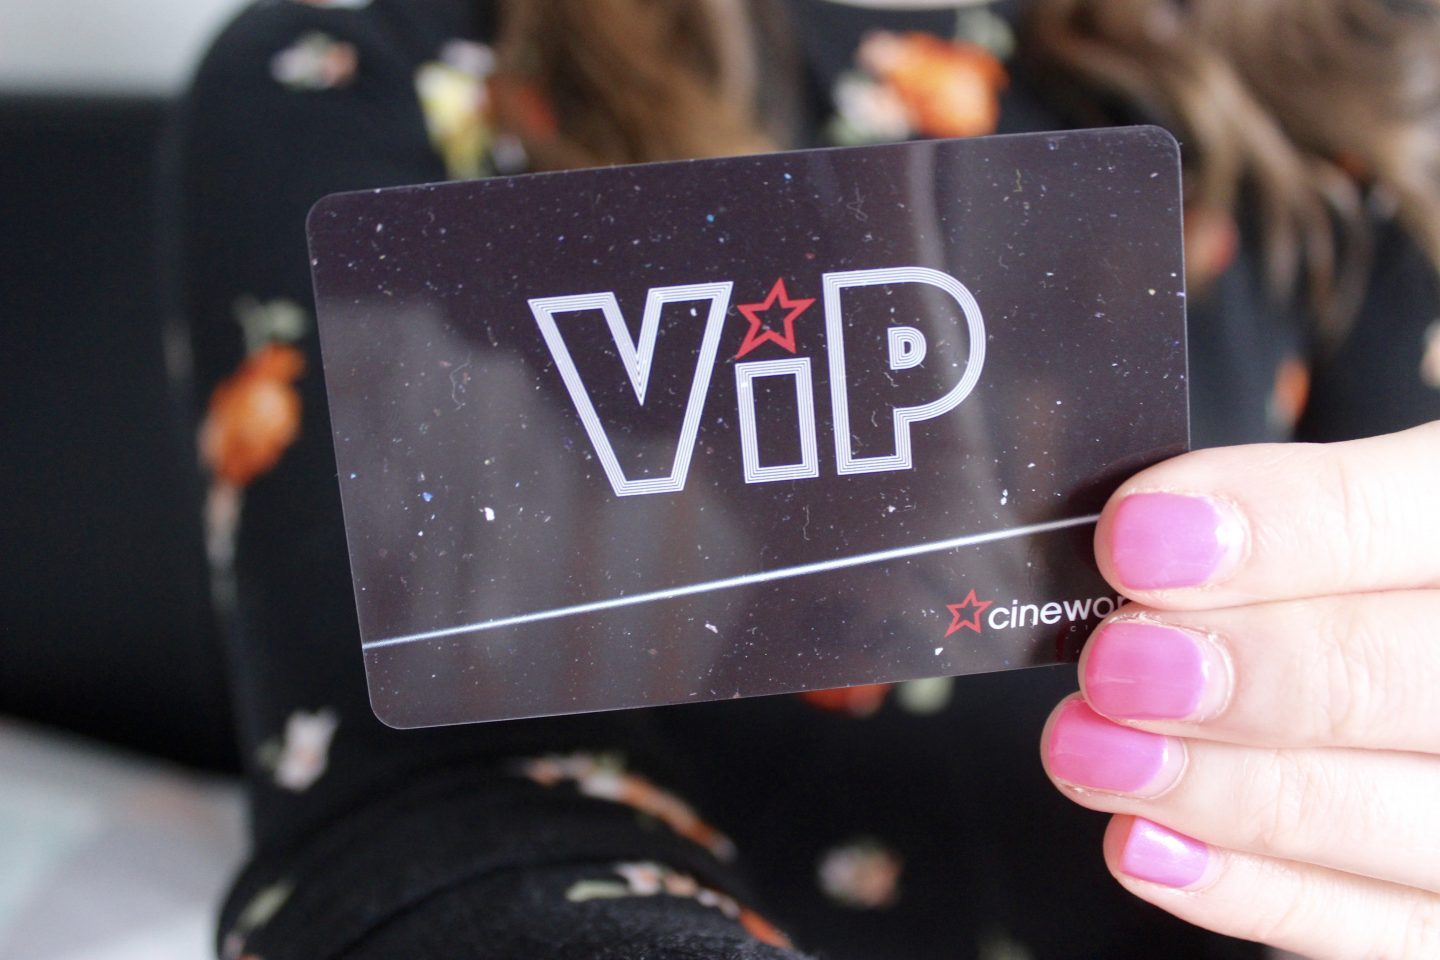 CINEWORLD VIP EXPERIENCE REVIEW | IS IT WORTH THE MONEY?